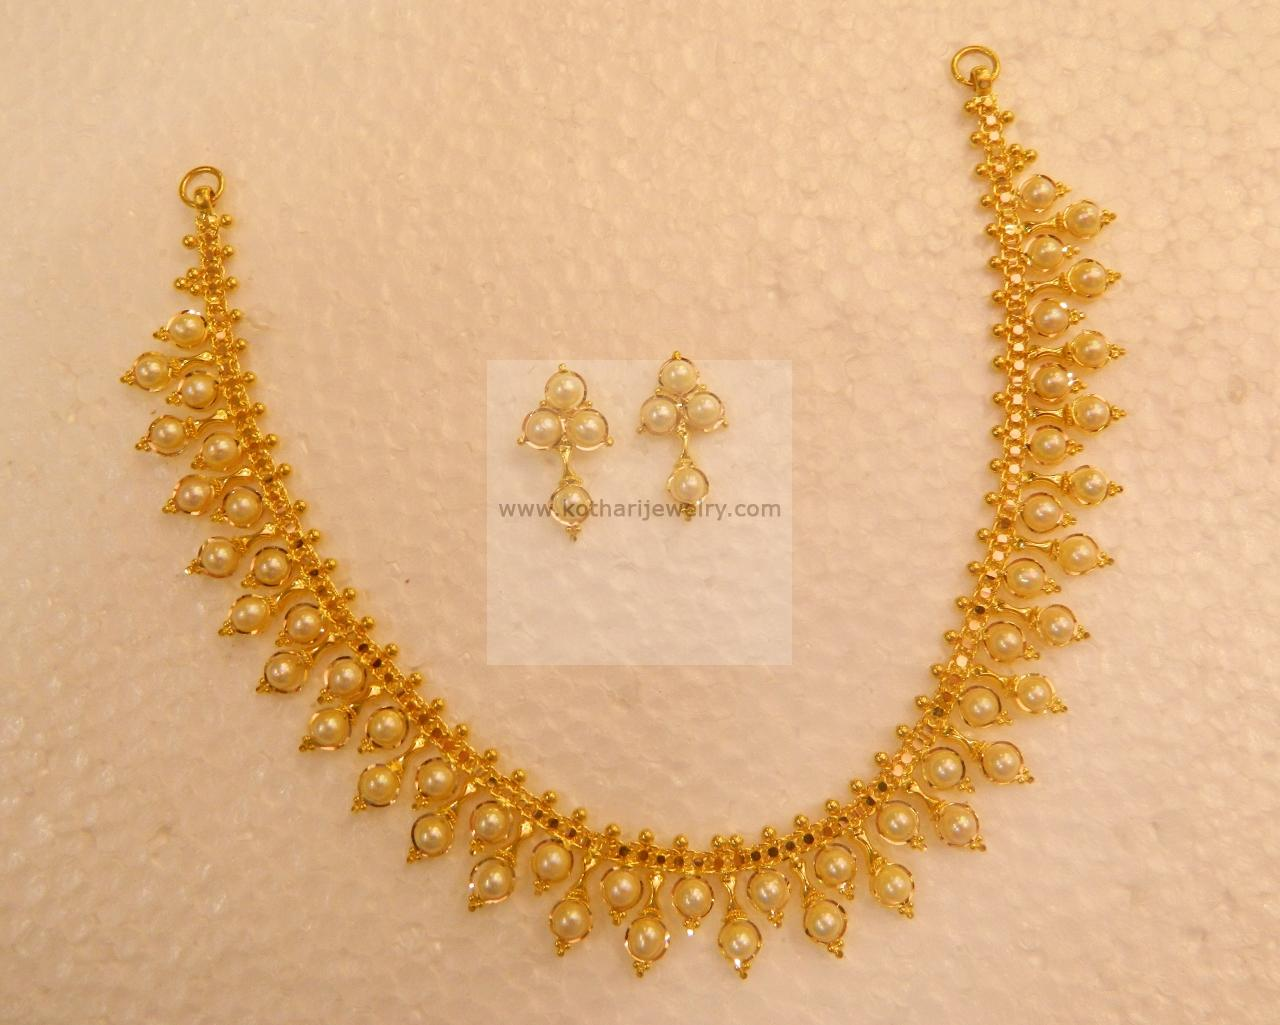 Necklaces / Harams - Gold Jewellery Necklaces / Harams (NK20312439 ...